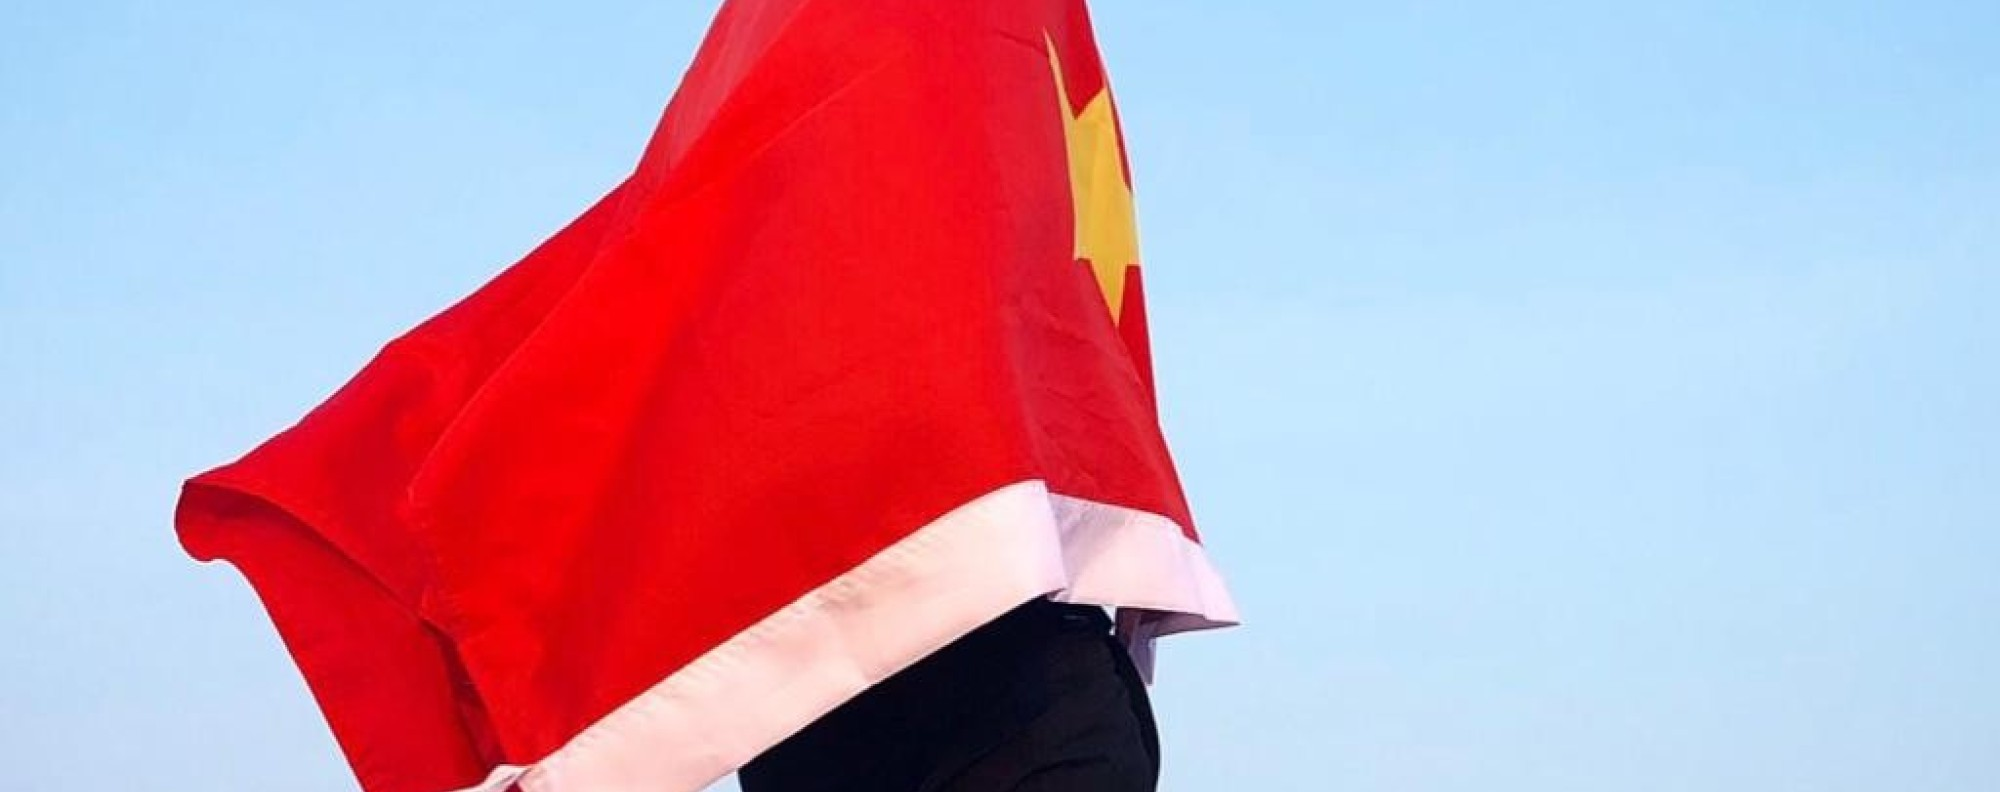 Ash Dykes wrapped in the Chinese flag while walking along the Yangtze River in China. Photo: Handout